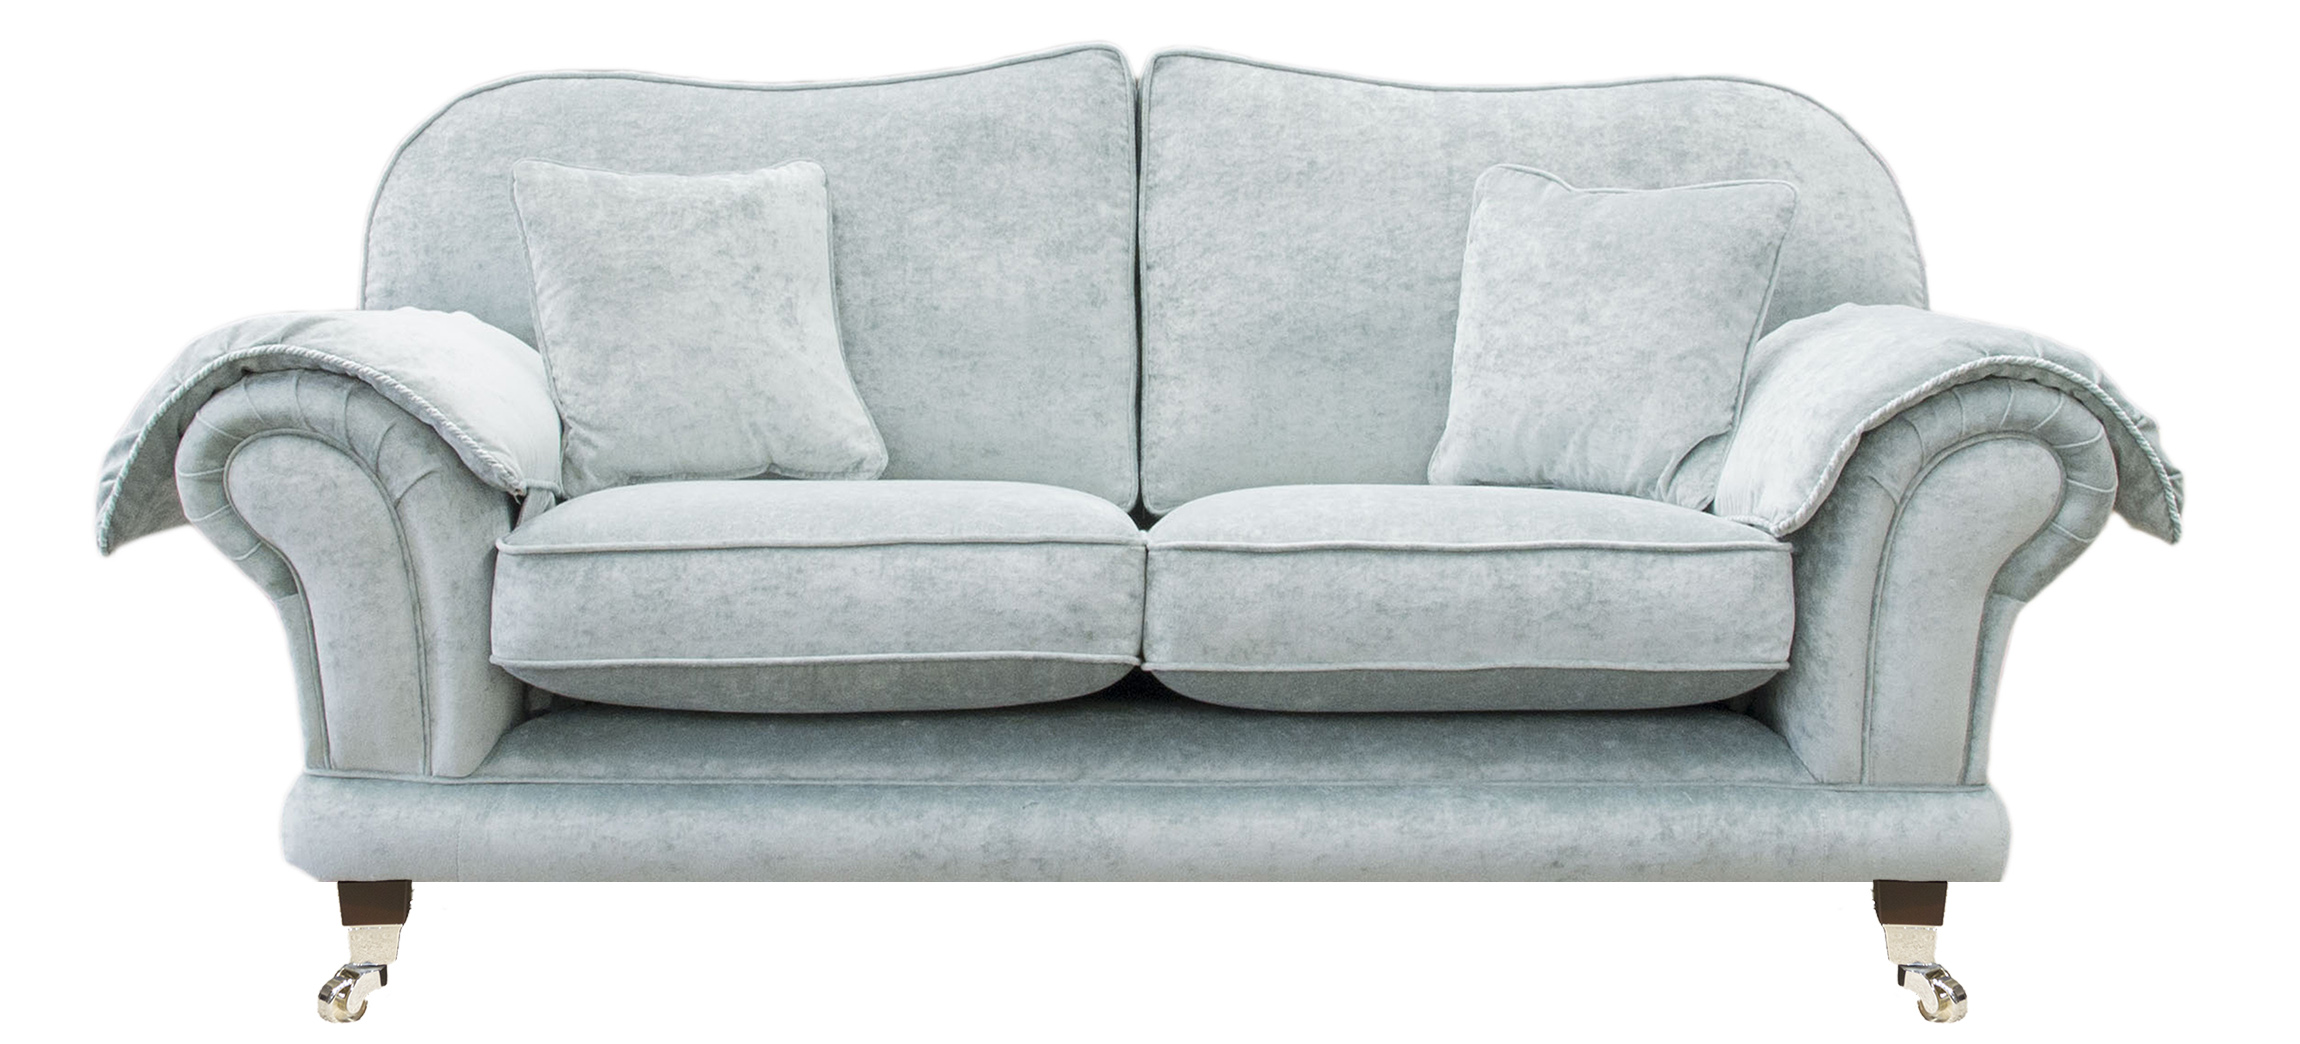 Alexandra Large Sofa in Platinum Collection Fabric